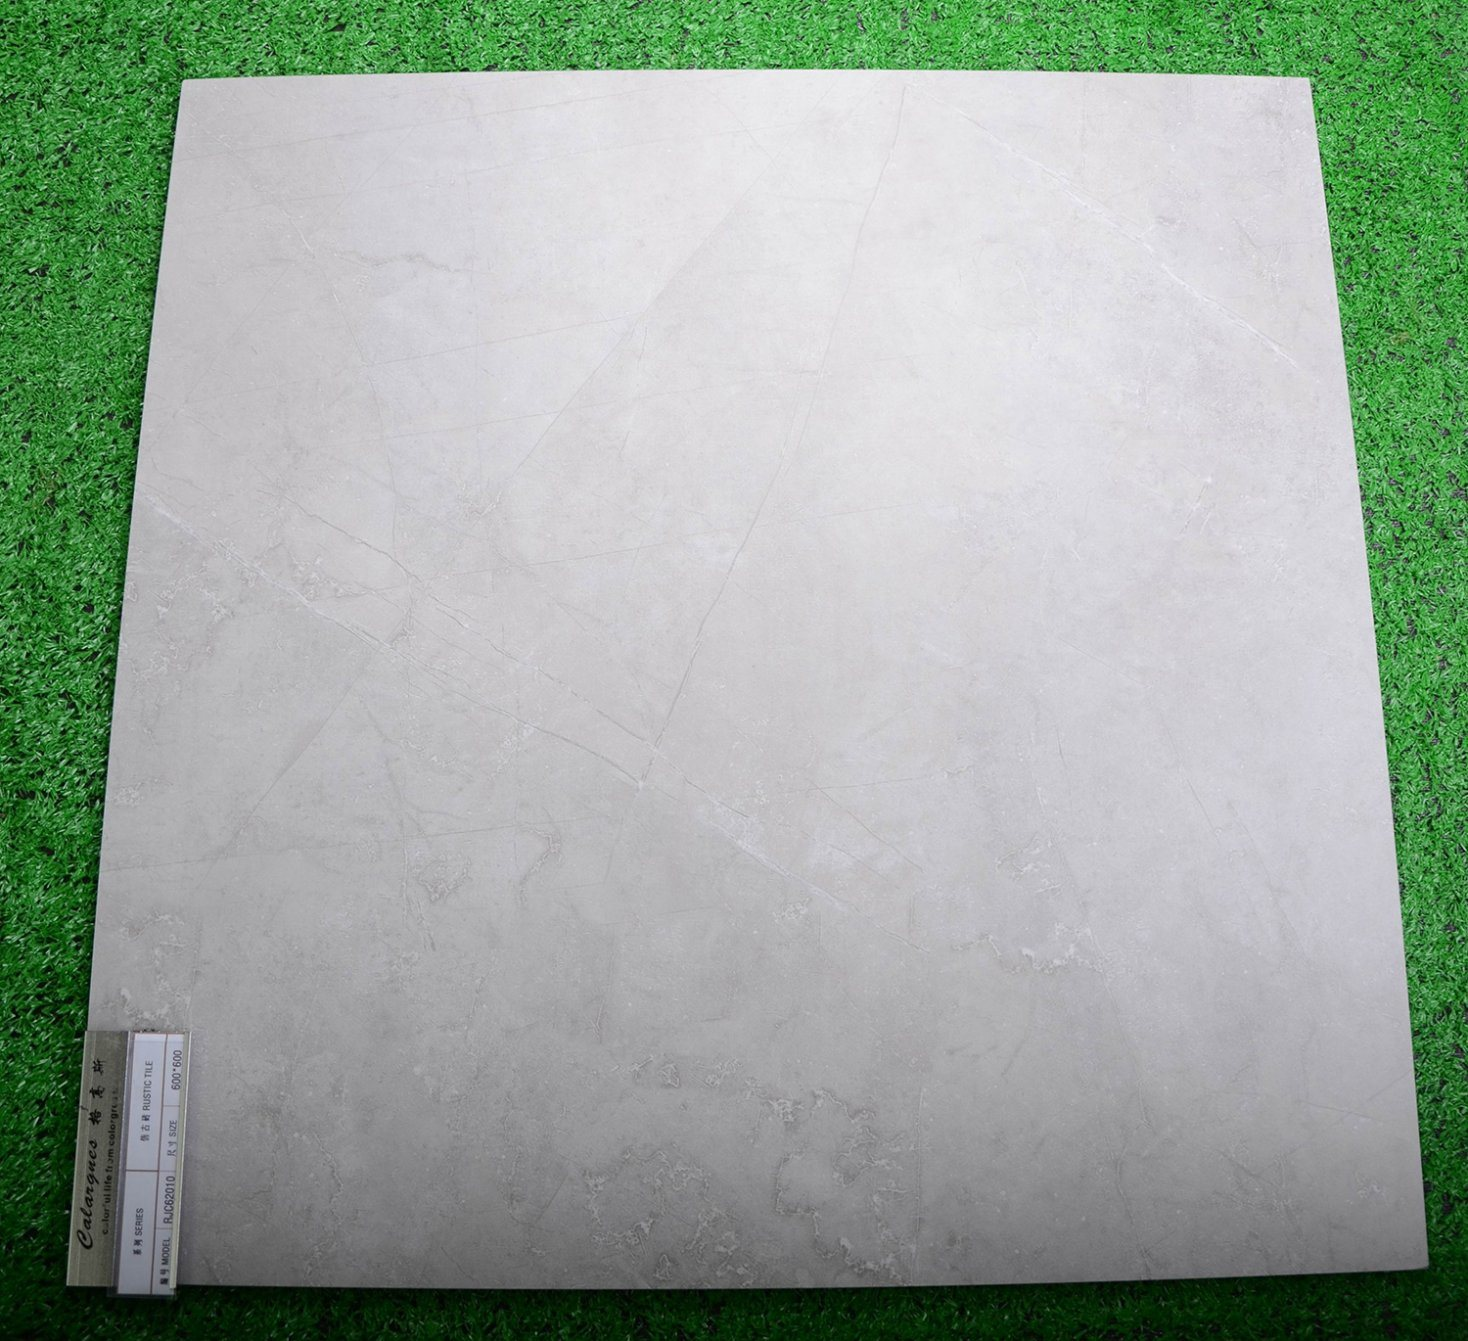 China building material floor tile cheap rate rustic porcelain china building material floor tile cheap rate rustic porcelain floor tile 6060cm rjc62010 china building material floor tile doublecrazyfo Gallery